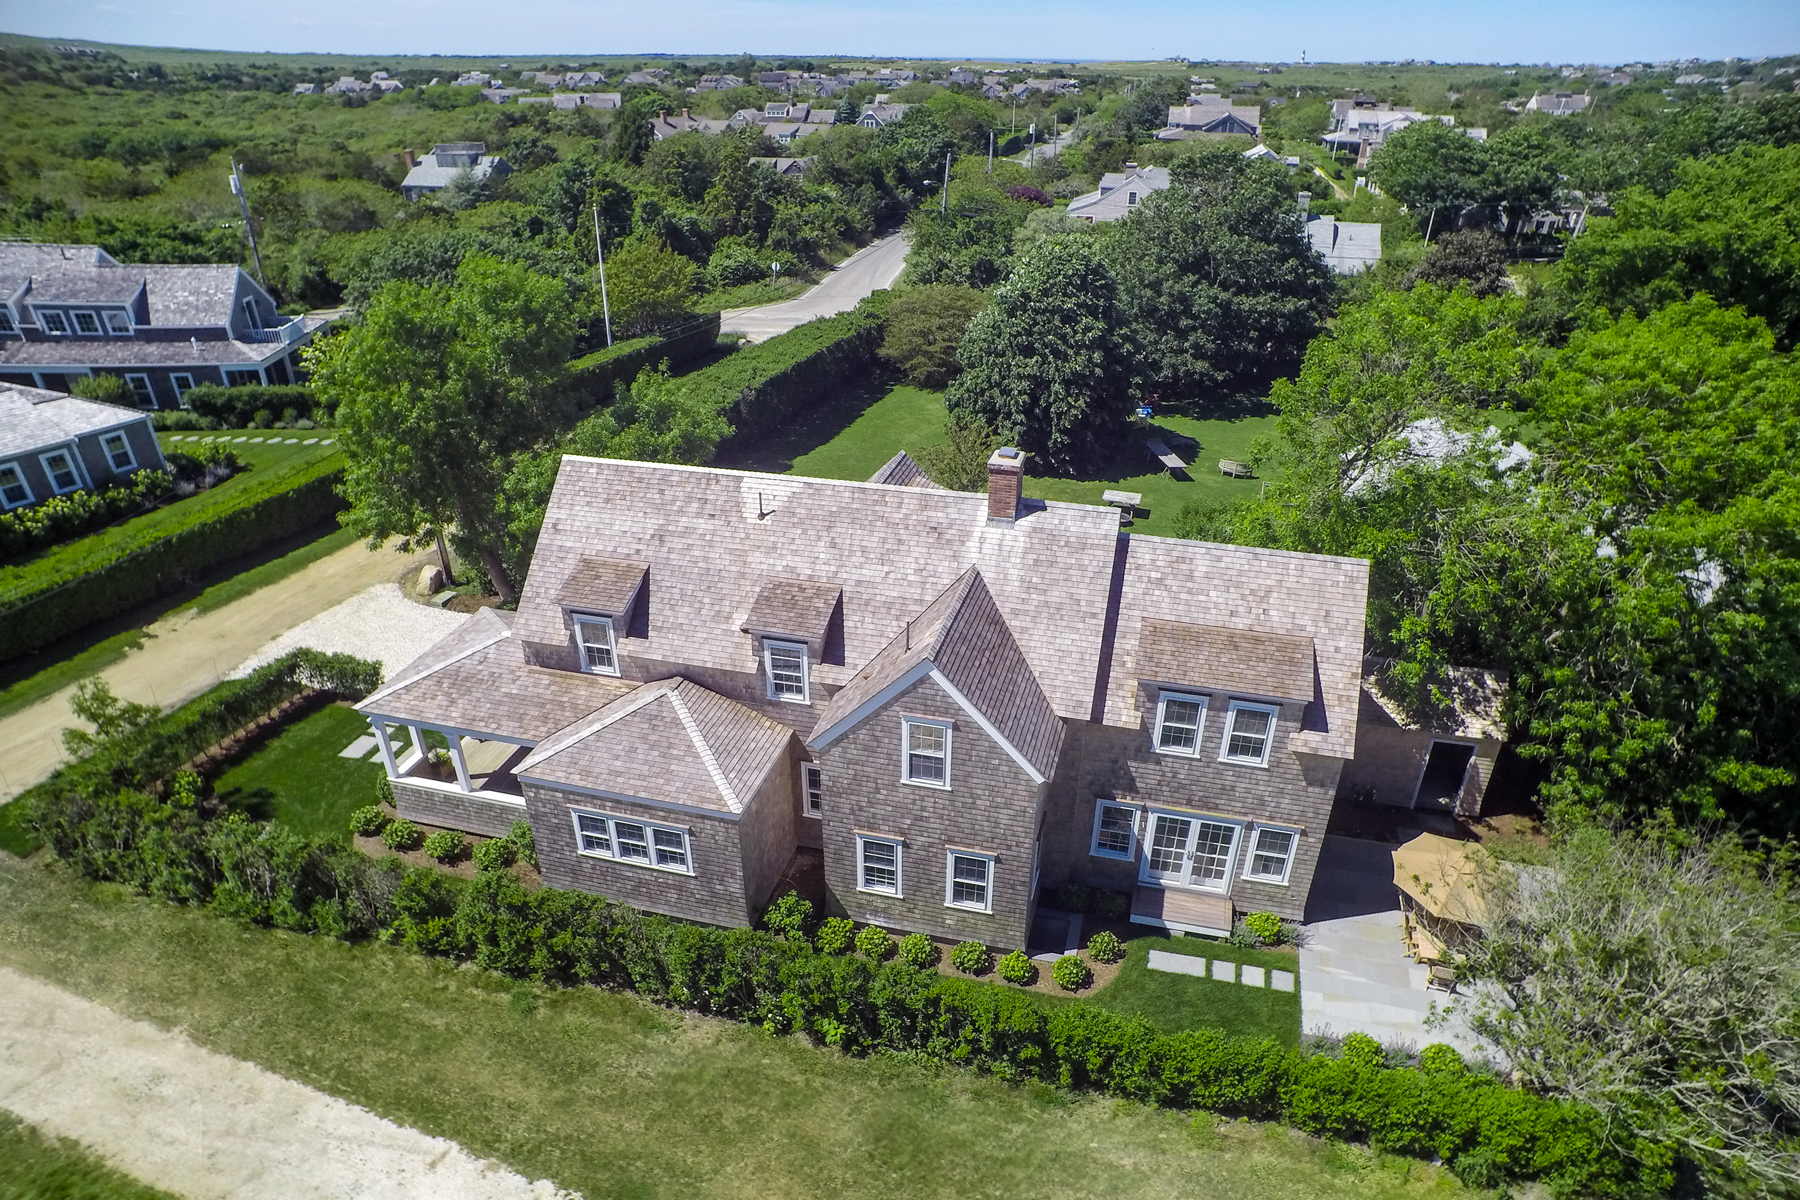 Single Family Home for Sale at Beautiful New Home 5 Bunker Hill Road, Nantucket, Massachusetts, 02564 United States